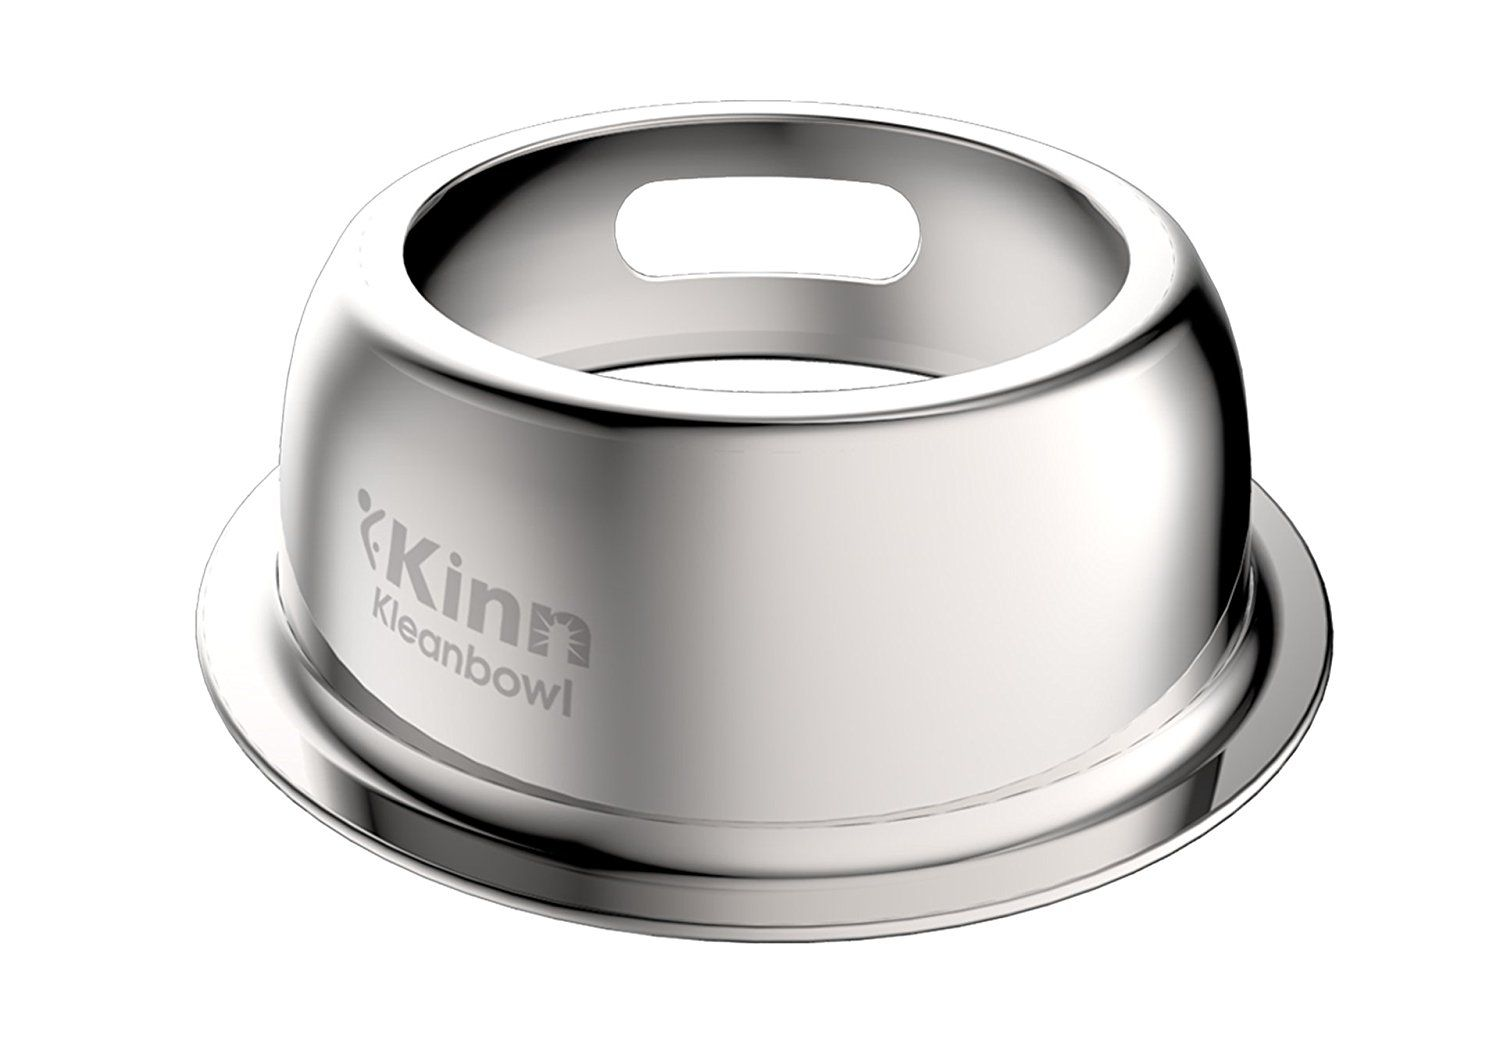 Kleanbowl The Healthier Water And Food Bowl For Dogs And Cats